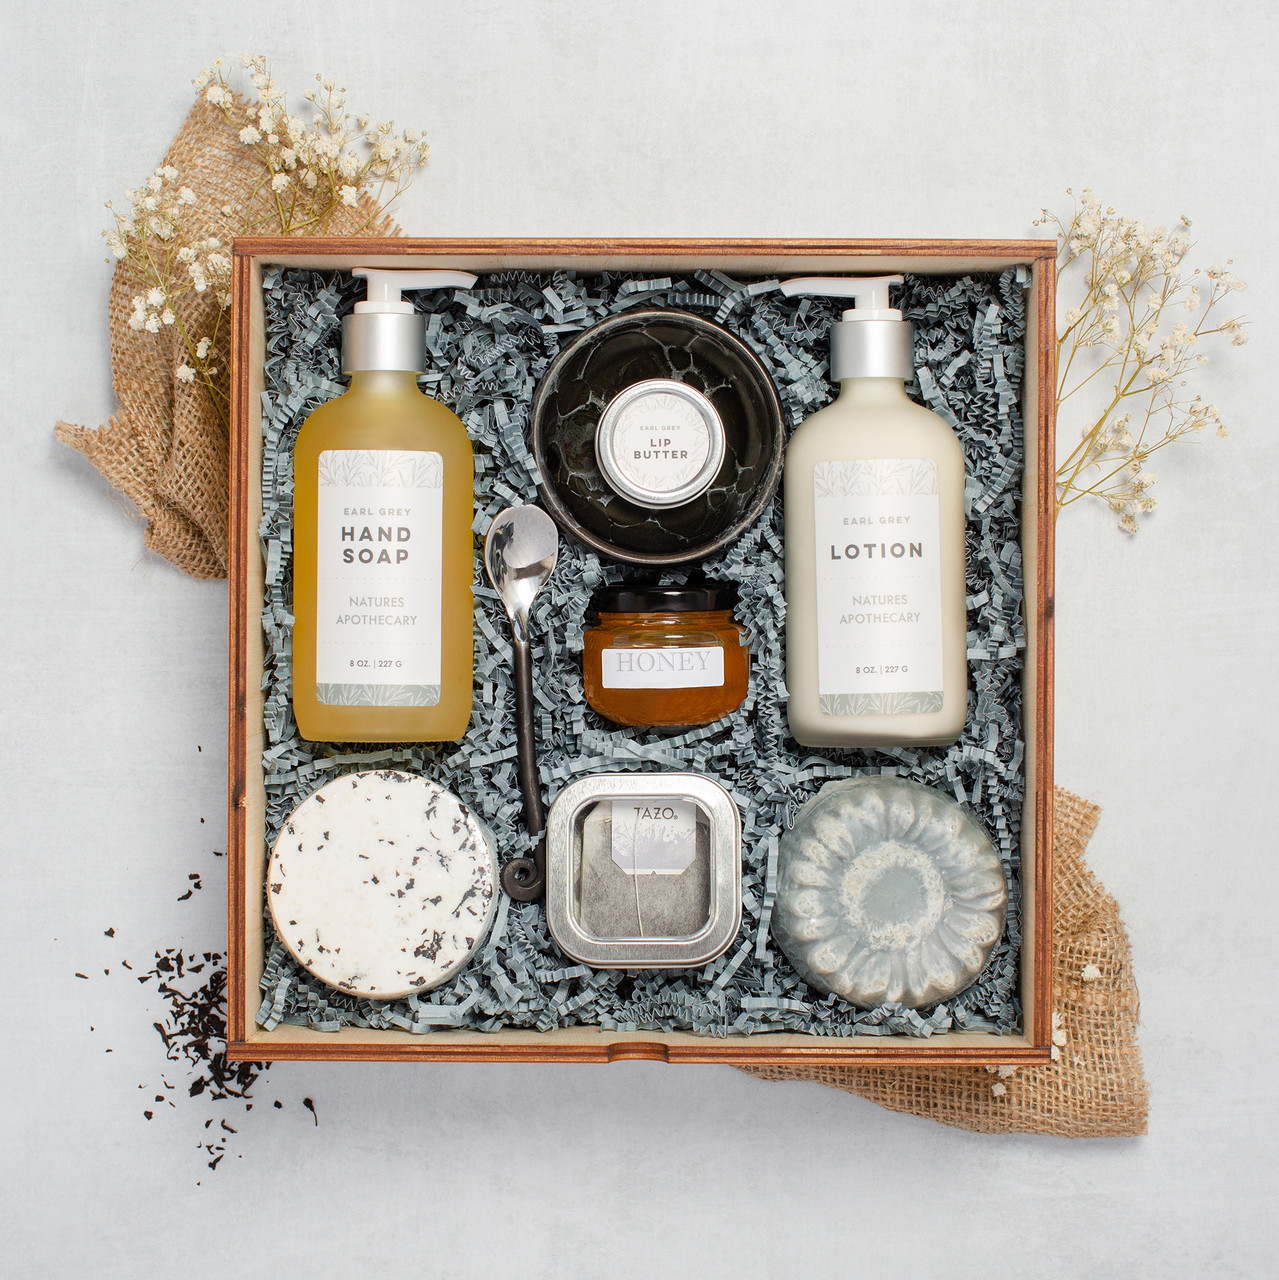 Earl Grey - The Gift of Luxury - Perfect House Warming Gift - Curated Gifts By DAYSPA Body Basics